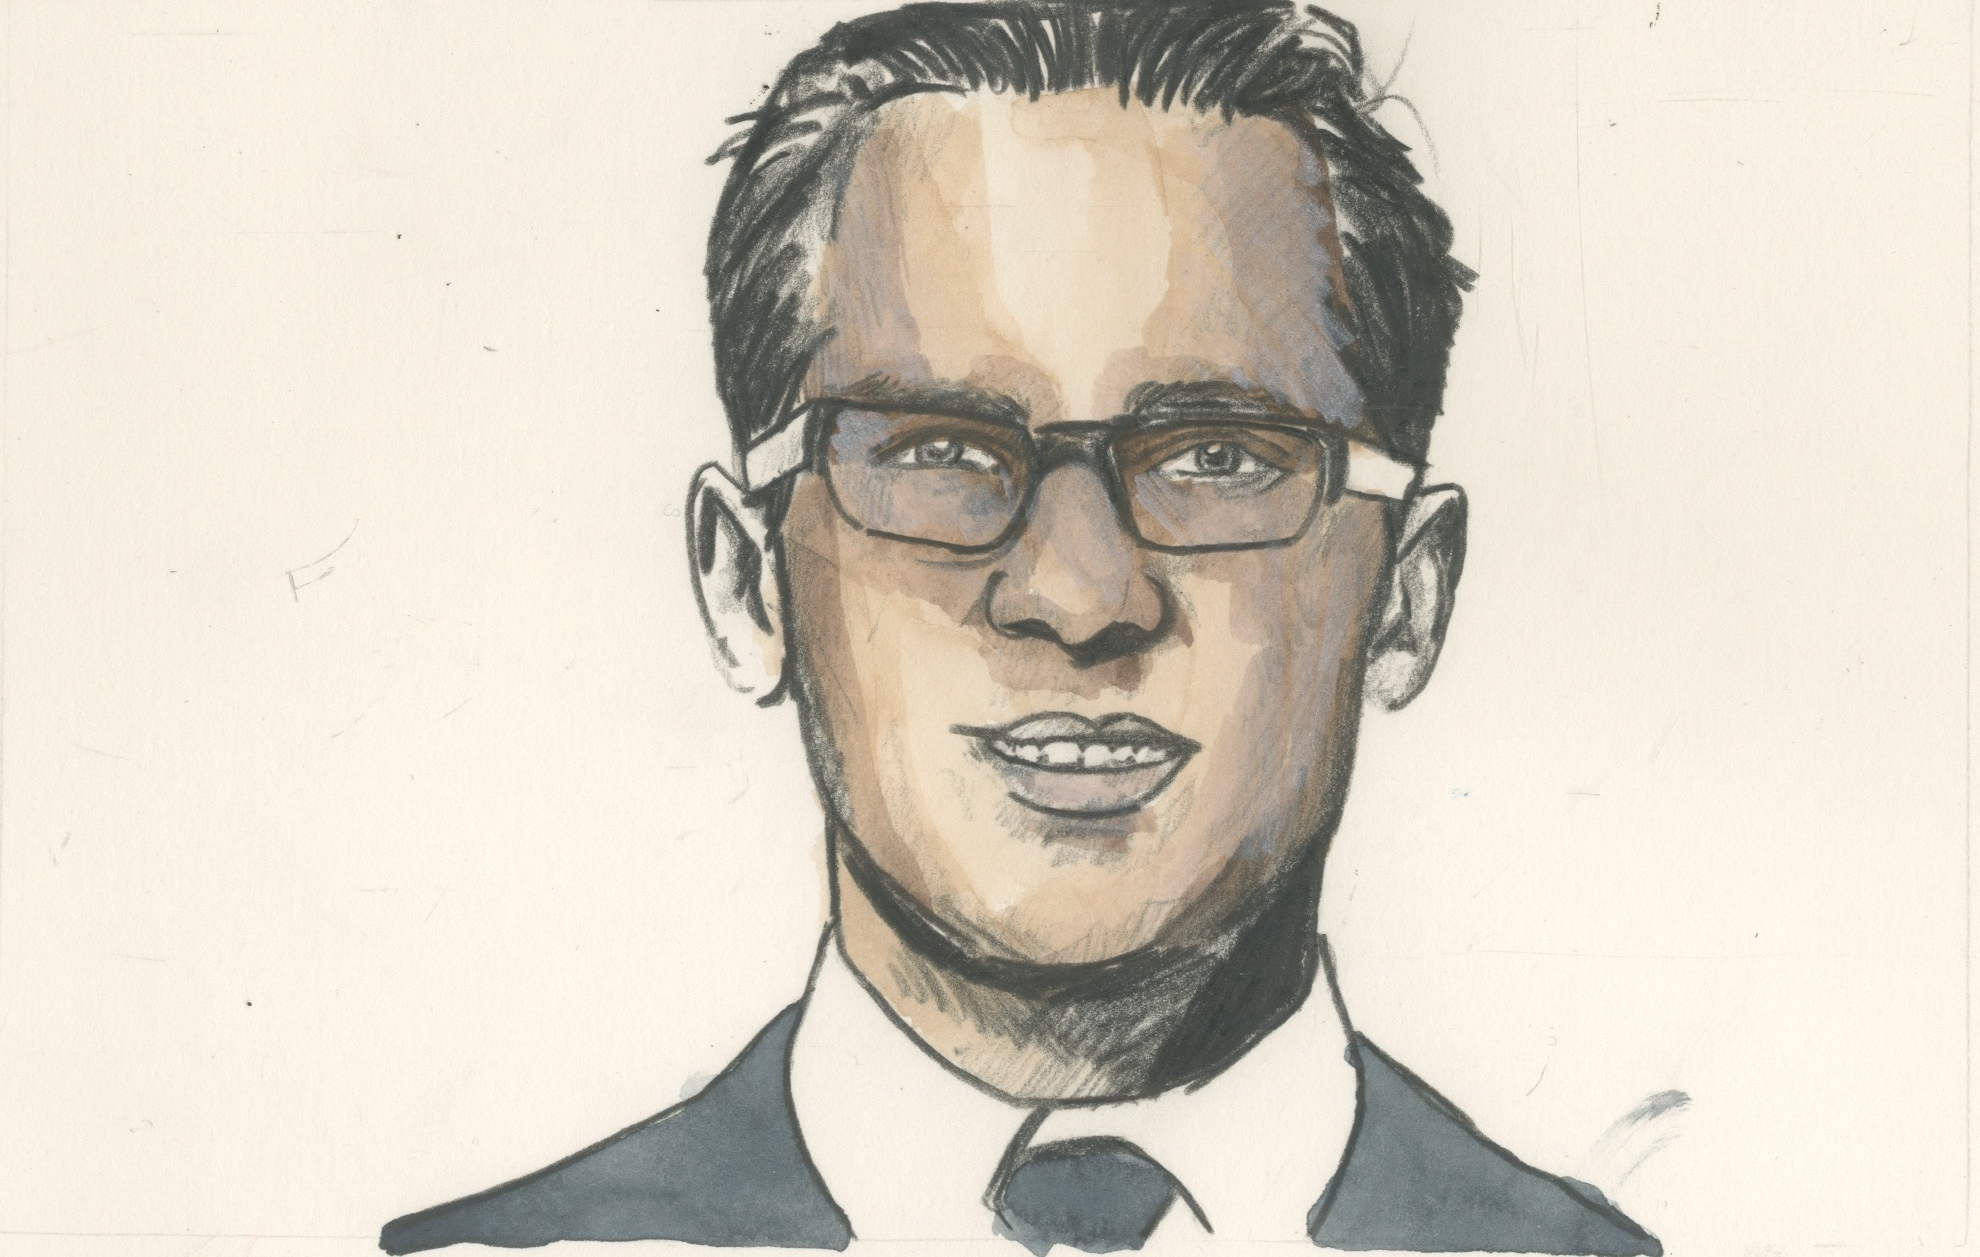 28/02/15  Tanzanian Mohammed Dewji, 39, is listed in the 2015 Forbes magazine Rich List as number 1500, and has a personal wealth of £ 1.3 billion